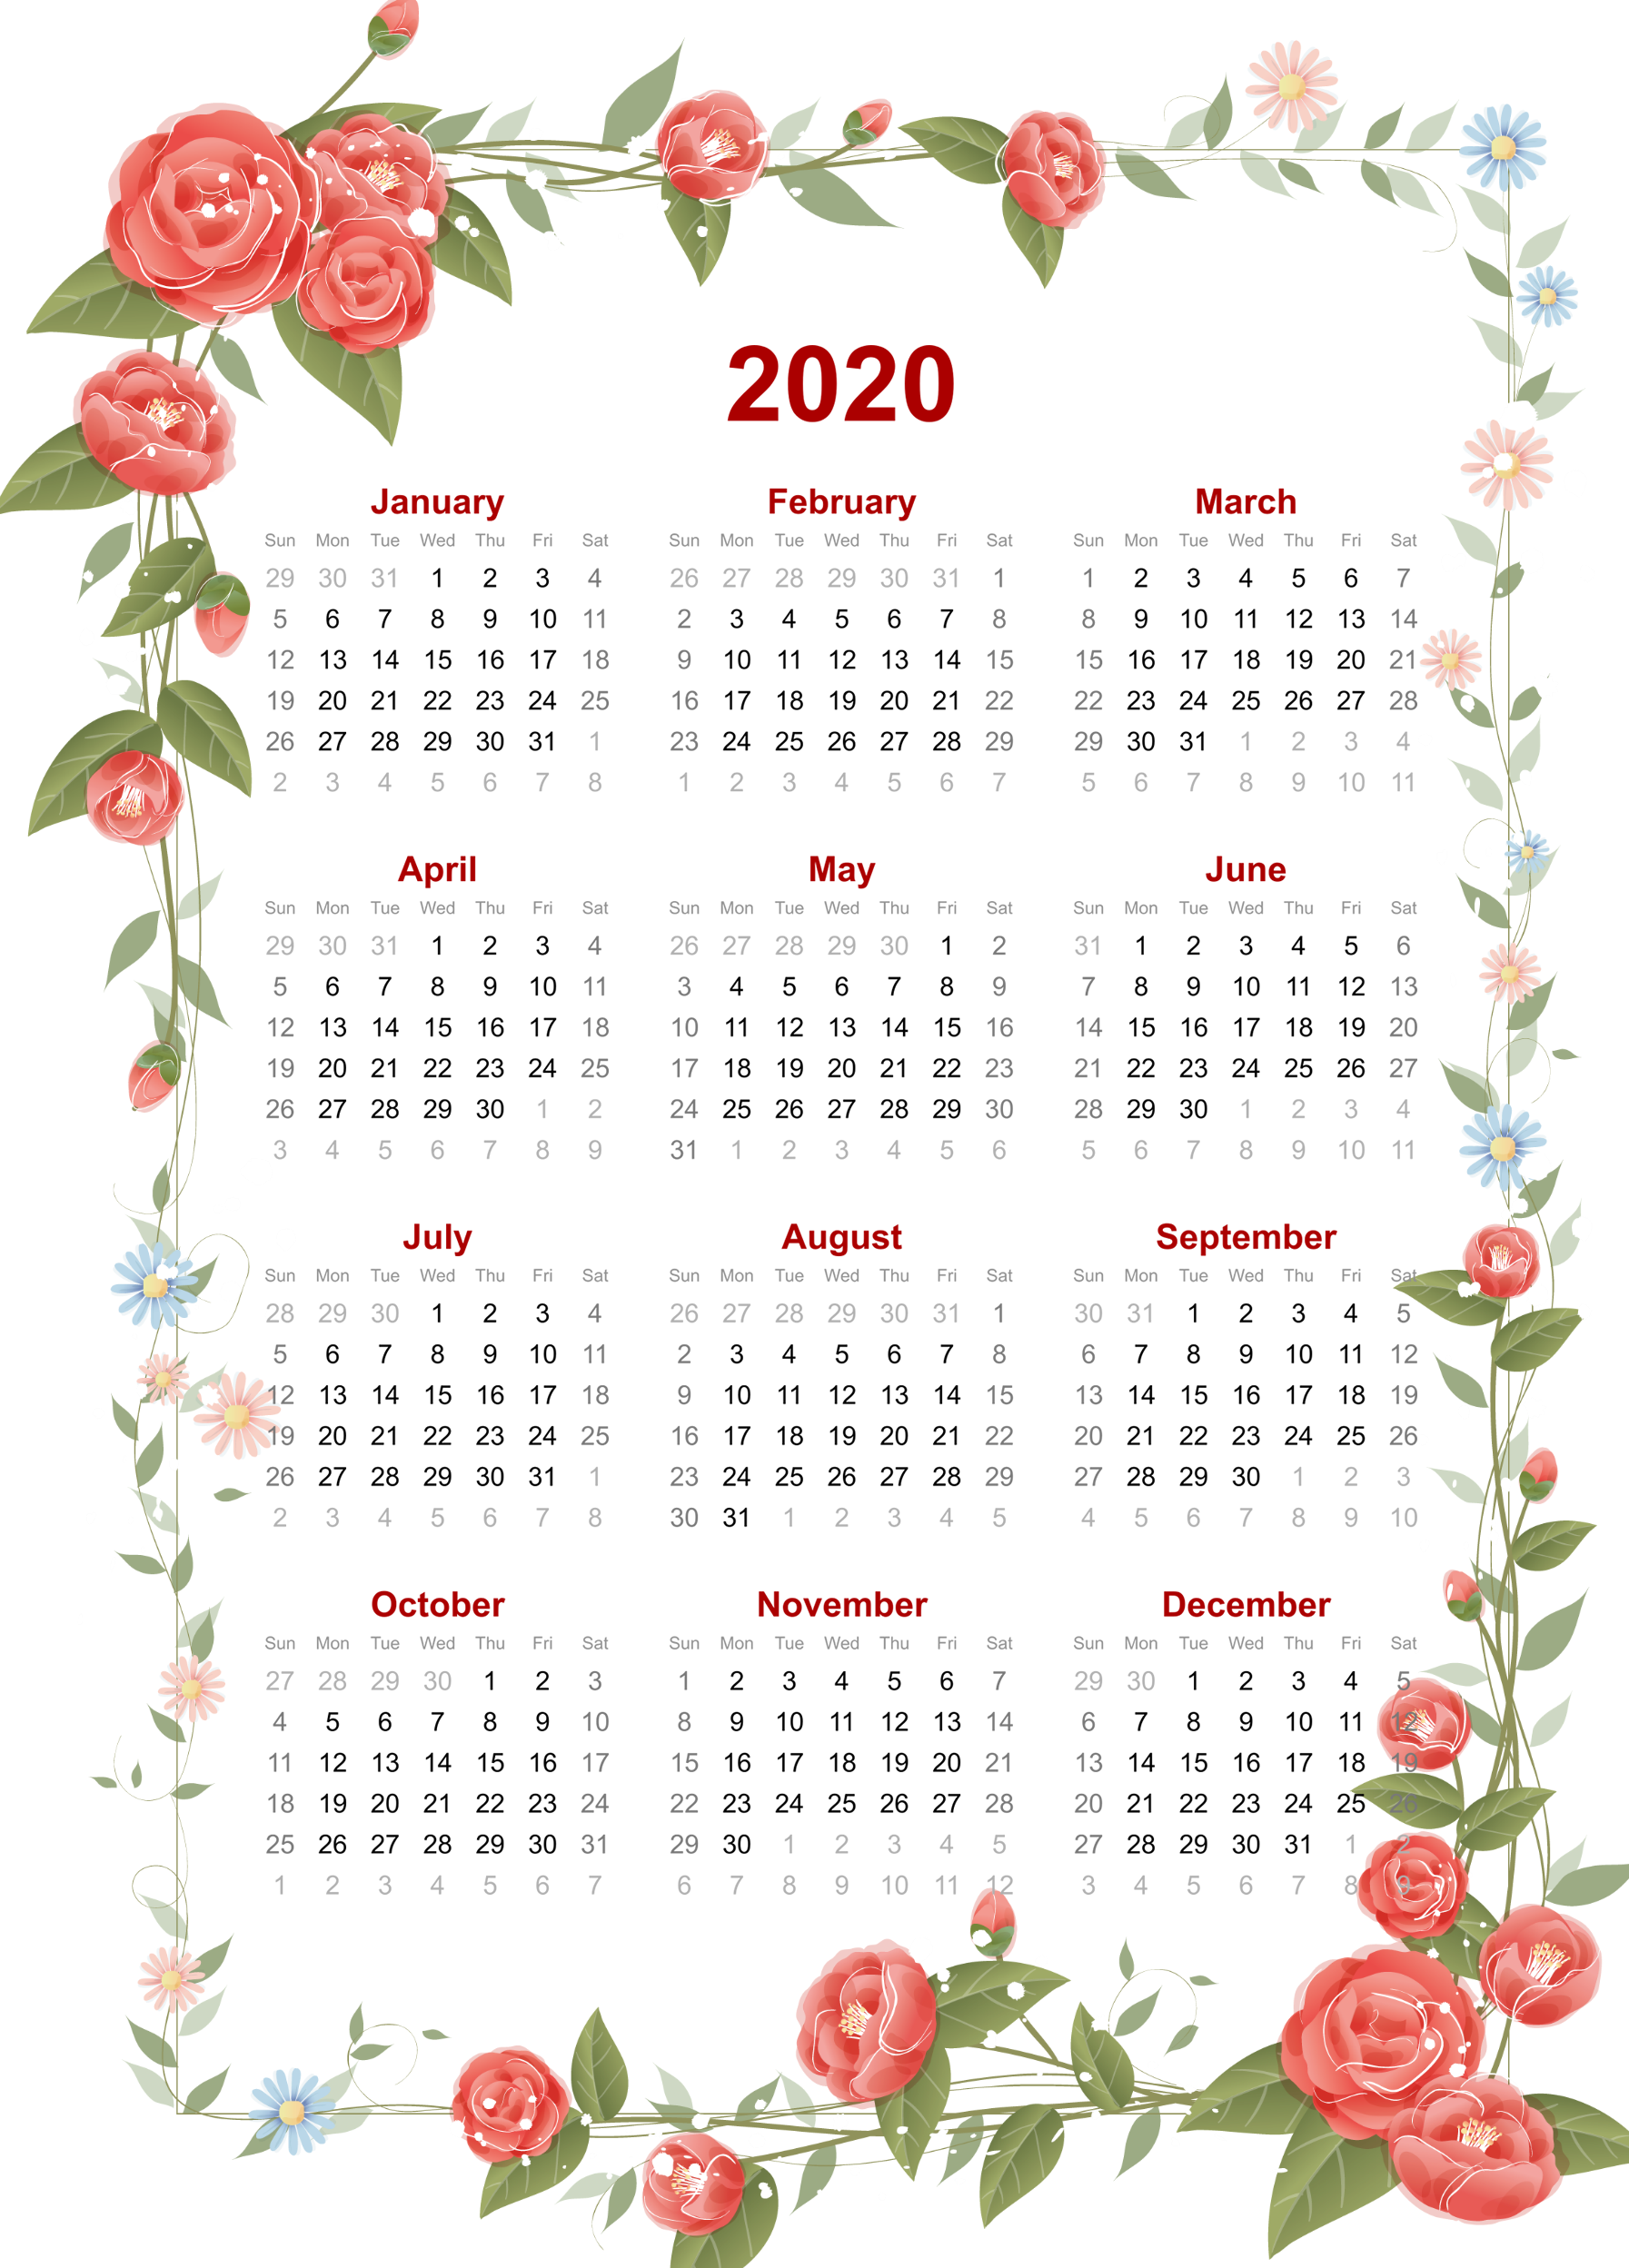 Yearly 2020 Floral Calendar